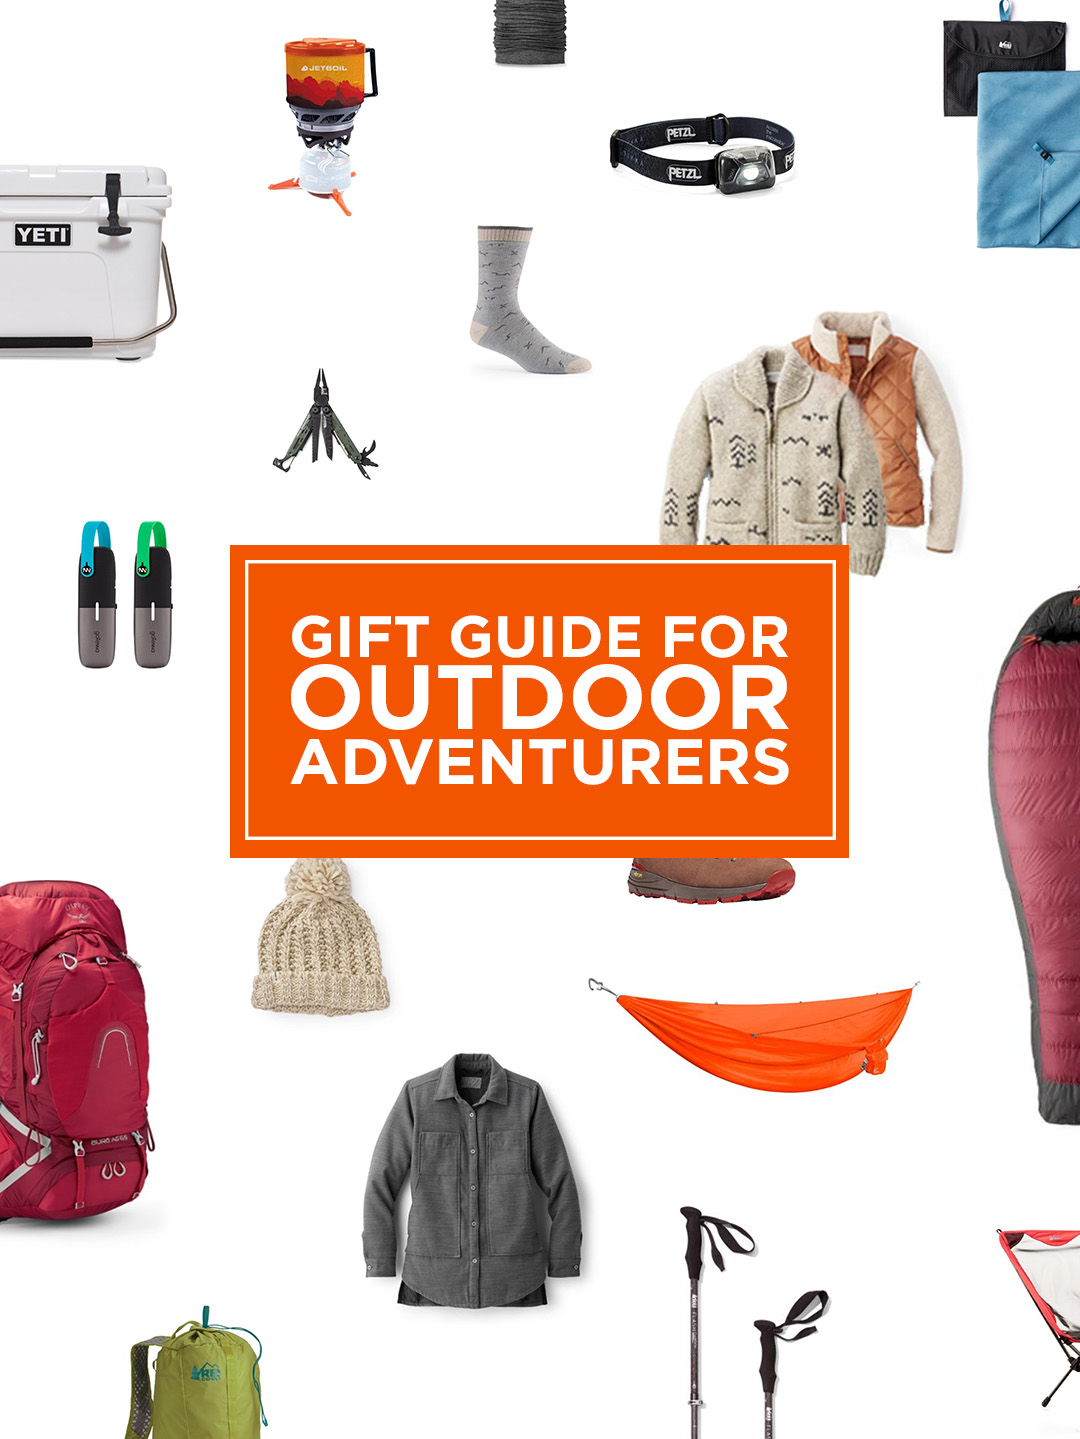 25 GIFTS YOUR OUTDOOR ADVENTURERS WILL ACTUALLY LOVE ESSENTIAL GIFT GUIDE For 2018